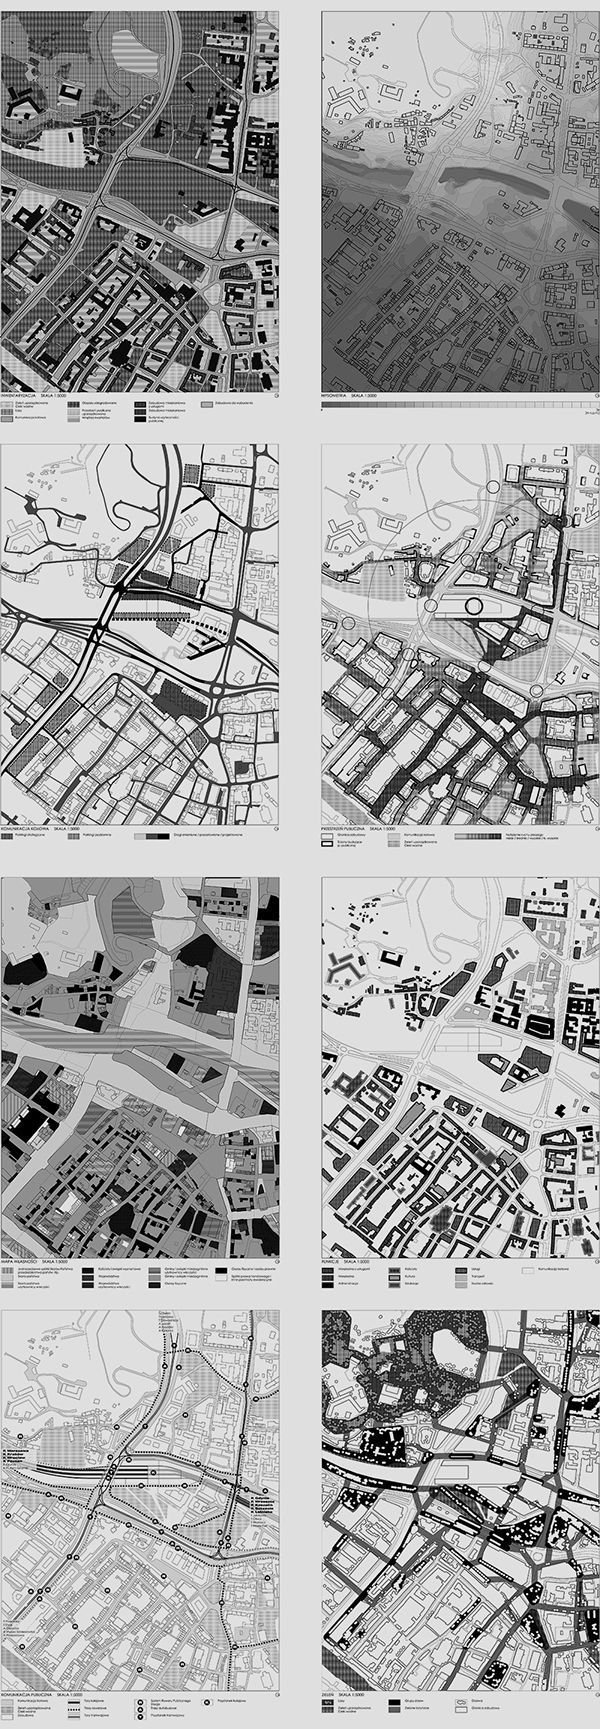 Development plan for the central part of Gdańsk downtown hub with the proposition concept of high-scale and multi-purpose building with railway station as dominant feature. Student work.